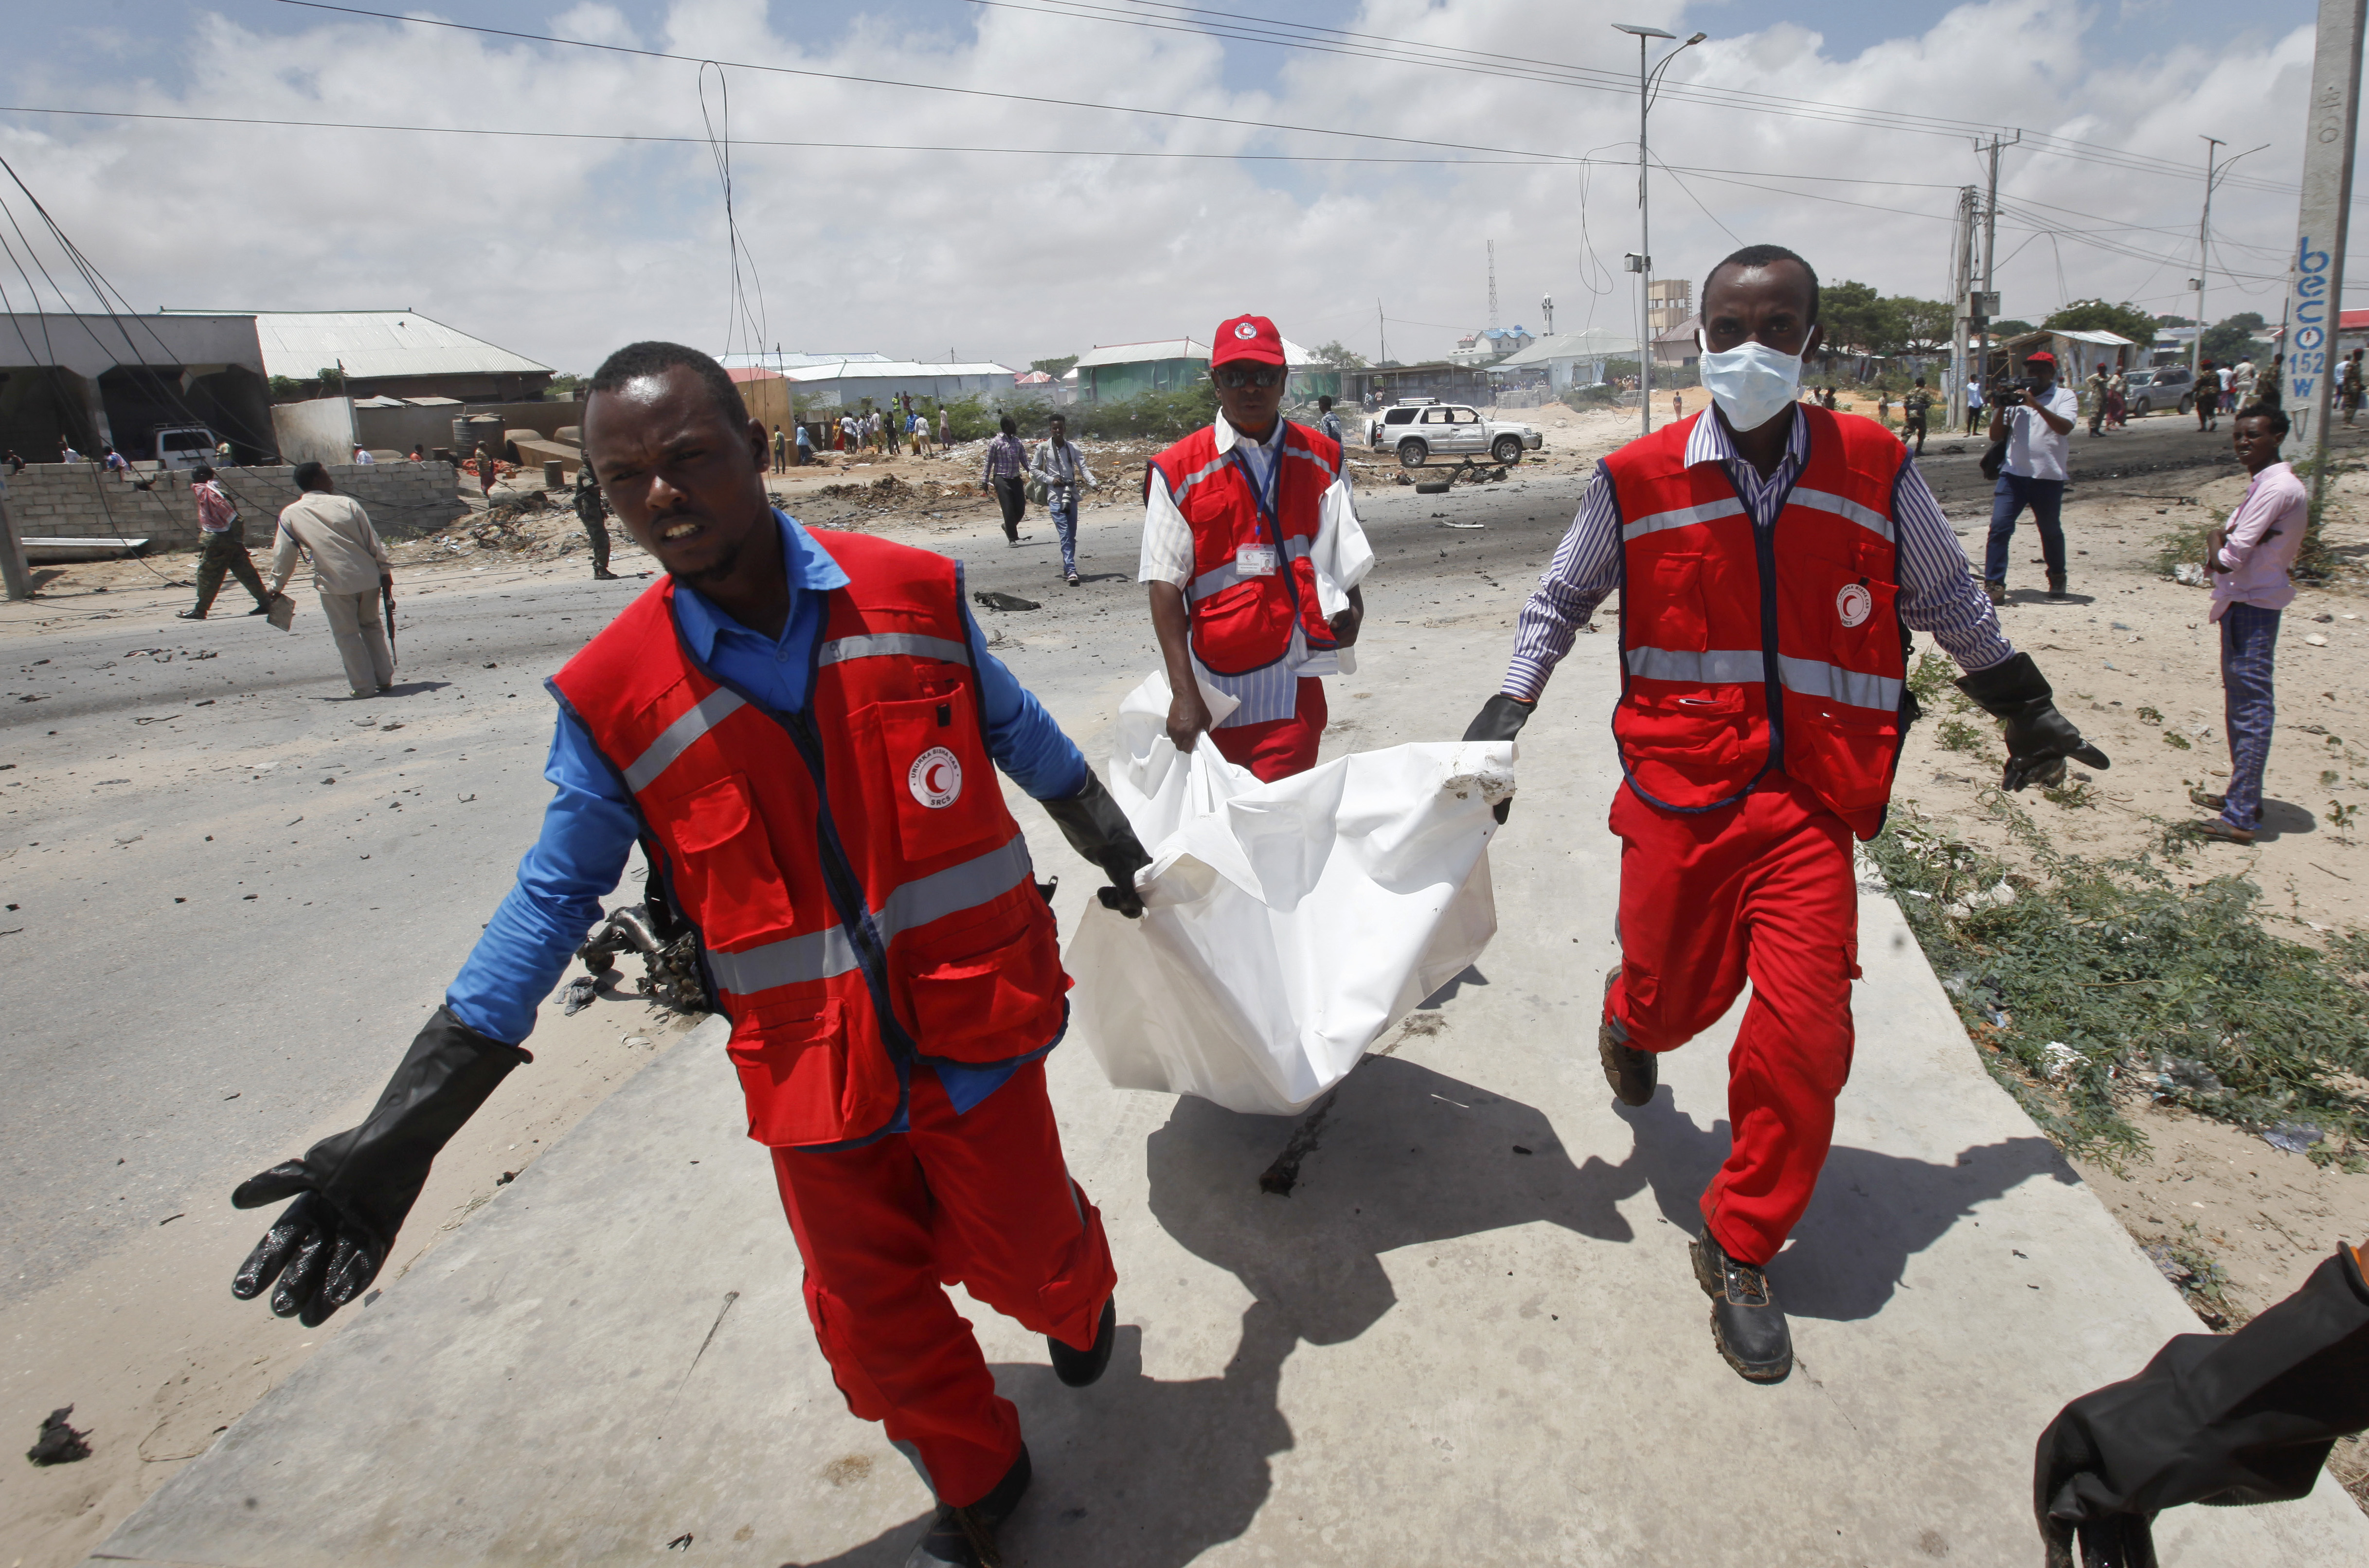 Somali Red Crescent workers carry away the body of a Somali civilian after an attack on a European Union military convoy in the capital Mogadishu, Somalia, Oct. 1, 2018.